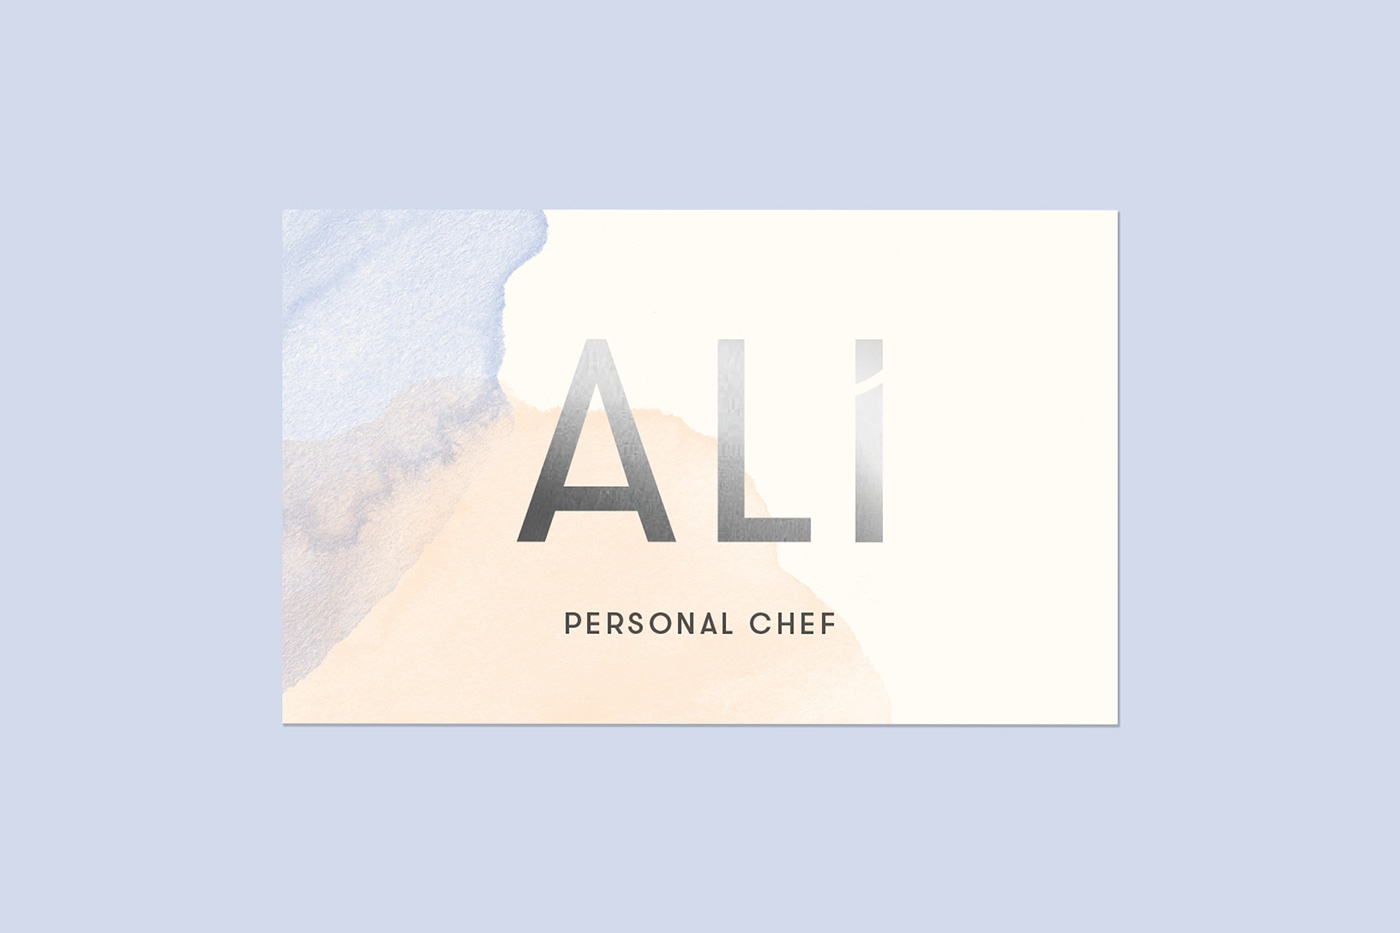 Personal chef business cards on behance ali greenberg is a personal chef who cooks in home meals for an upscale clientele she has an amazing fun personality that needed to come colourmoves